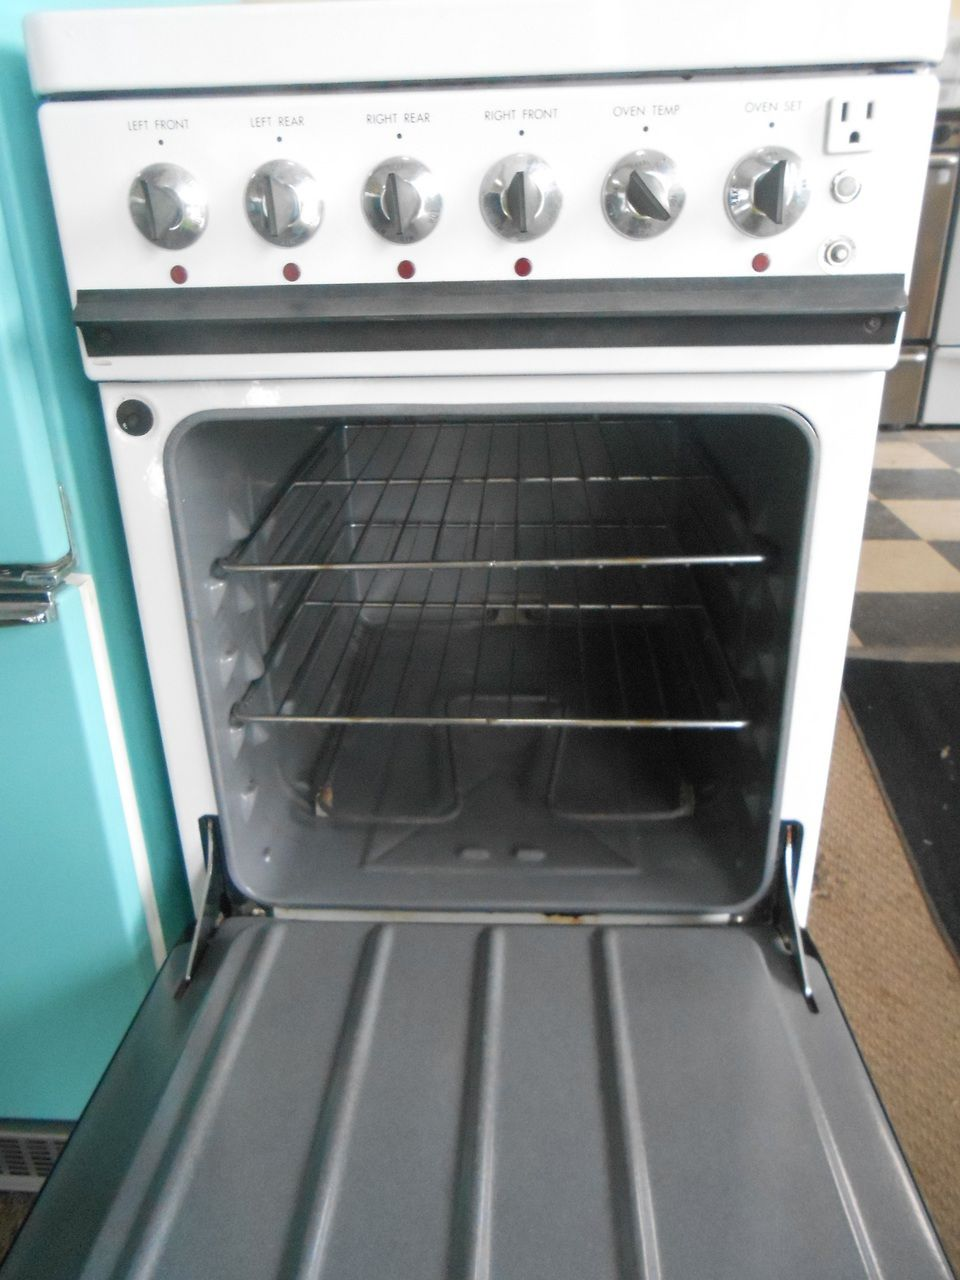 Appliance City - VINTAGE 20 INCH HOTPOINT ELECTRIC RANGE 4 BURNER 3 ...